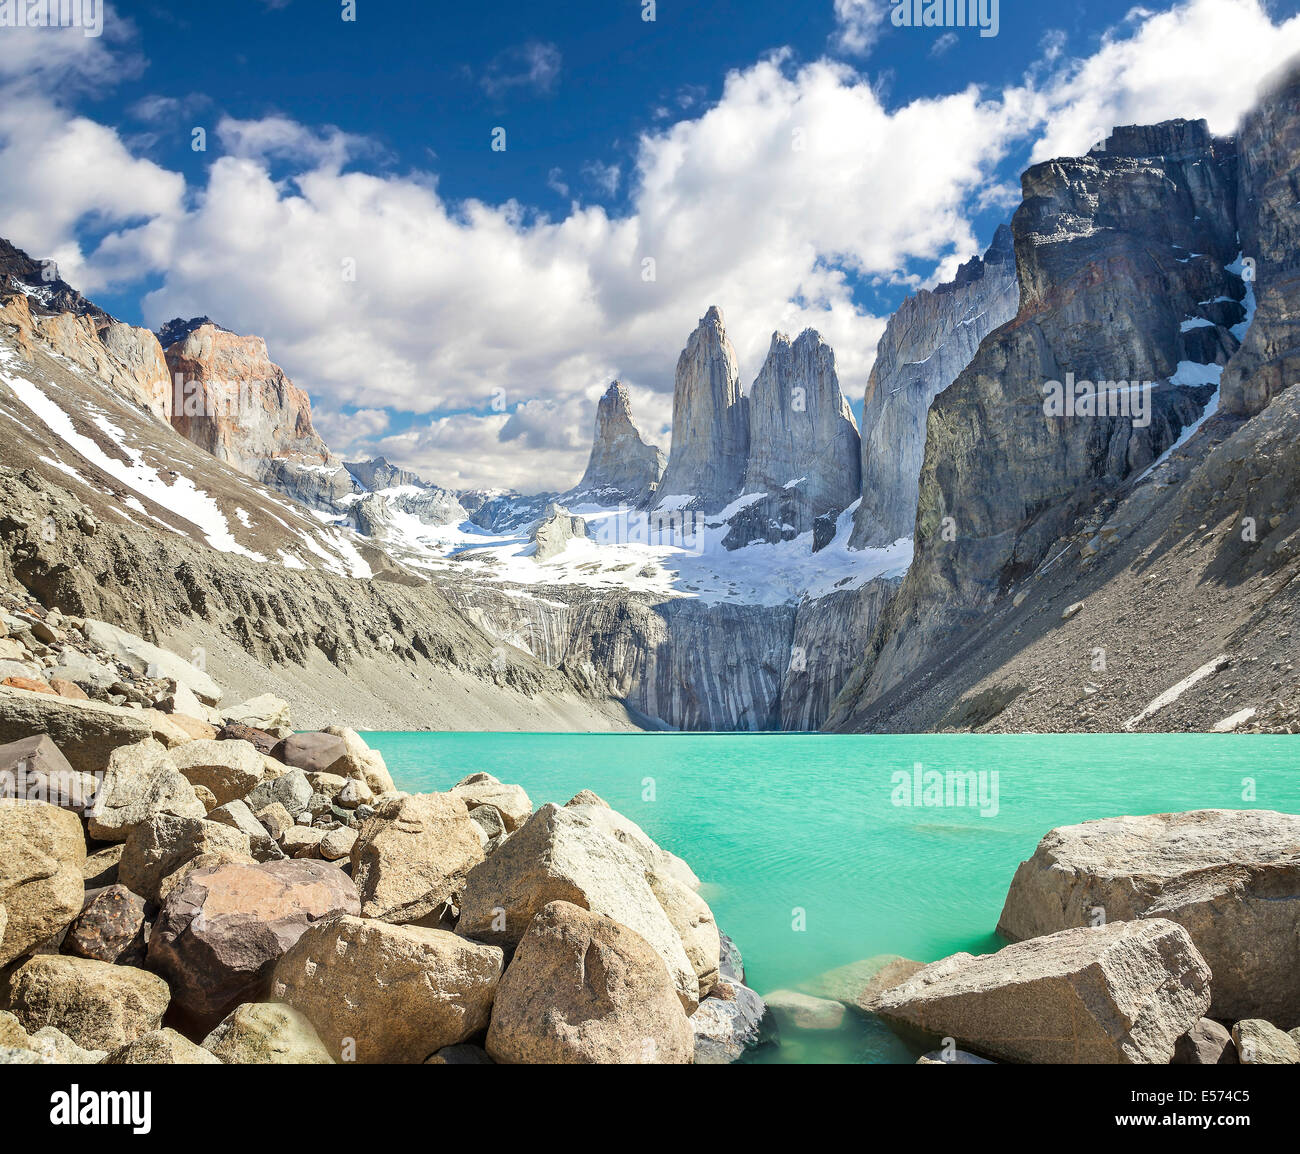 Les montagnes de Torres del Paine, Patagonie, Chili Photo Stock